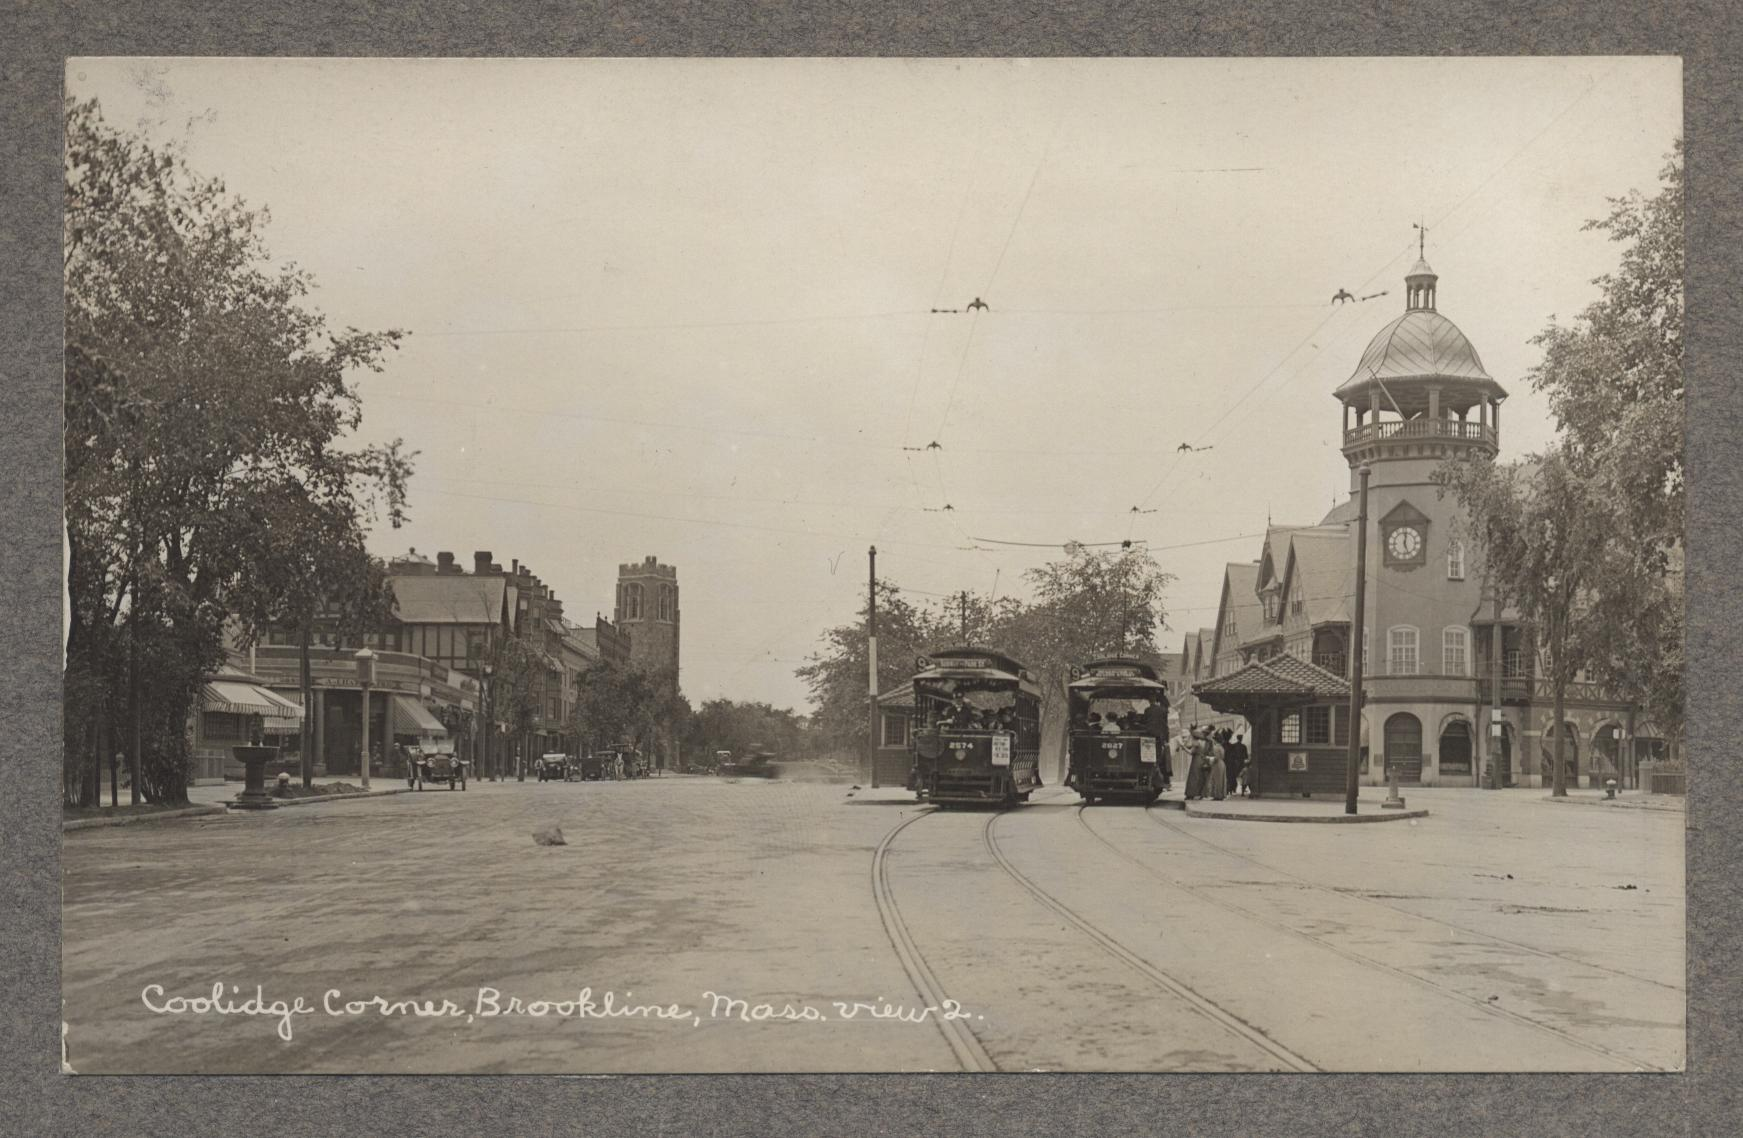 FRLA photo album 1310-51 Coolidge Corner c1915